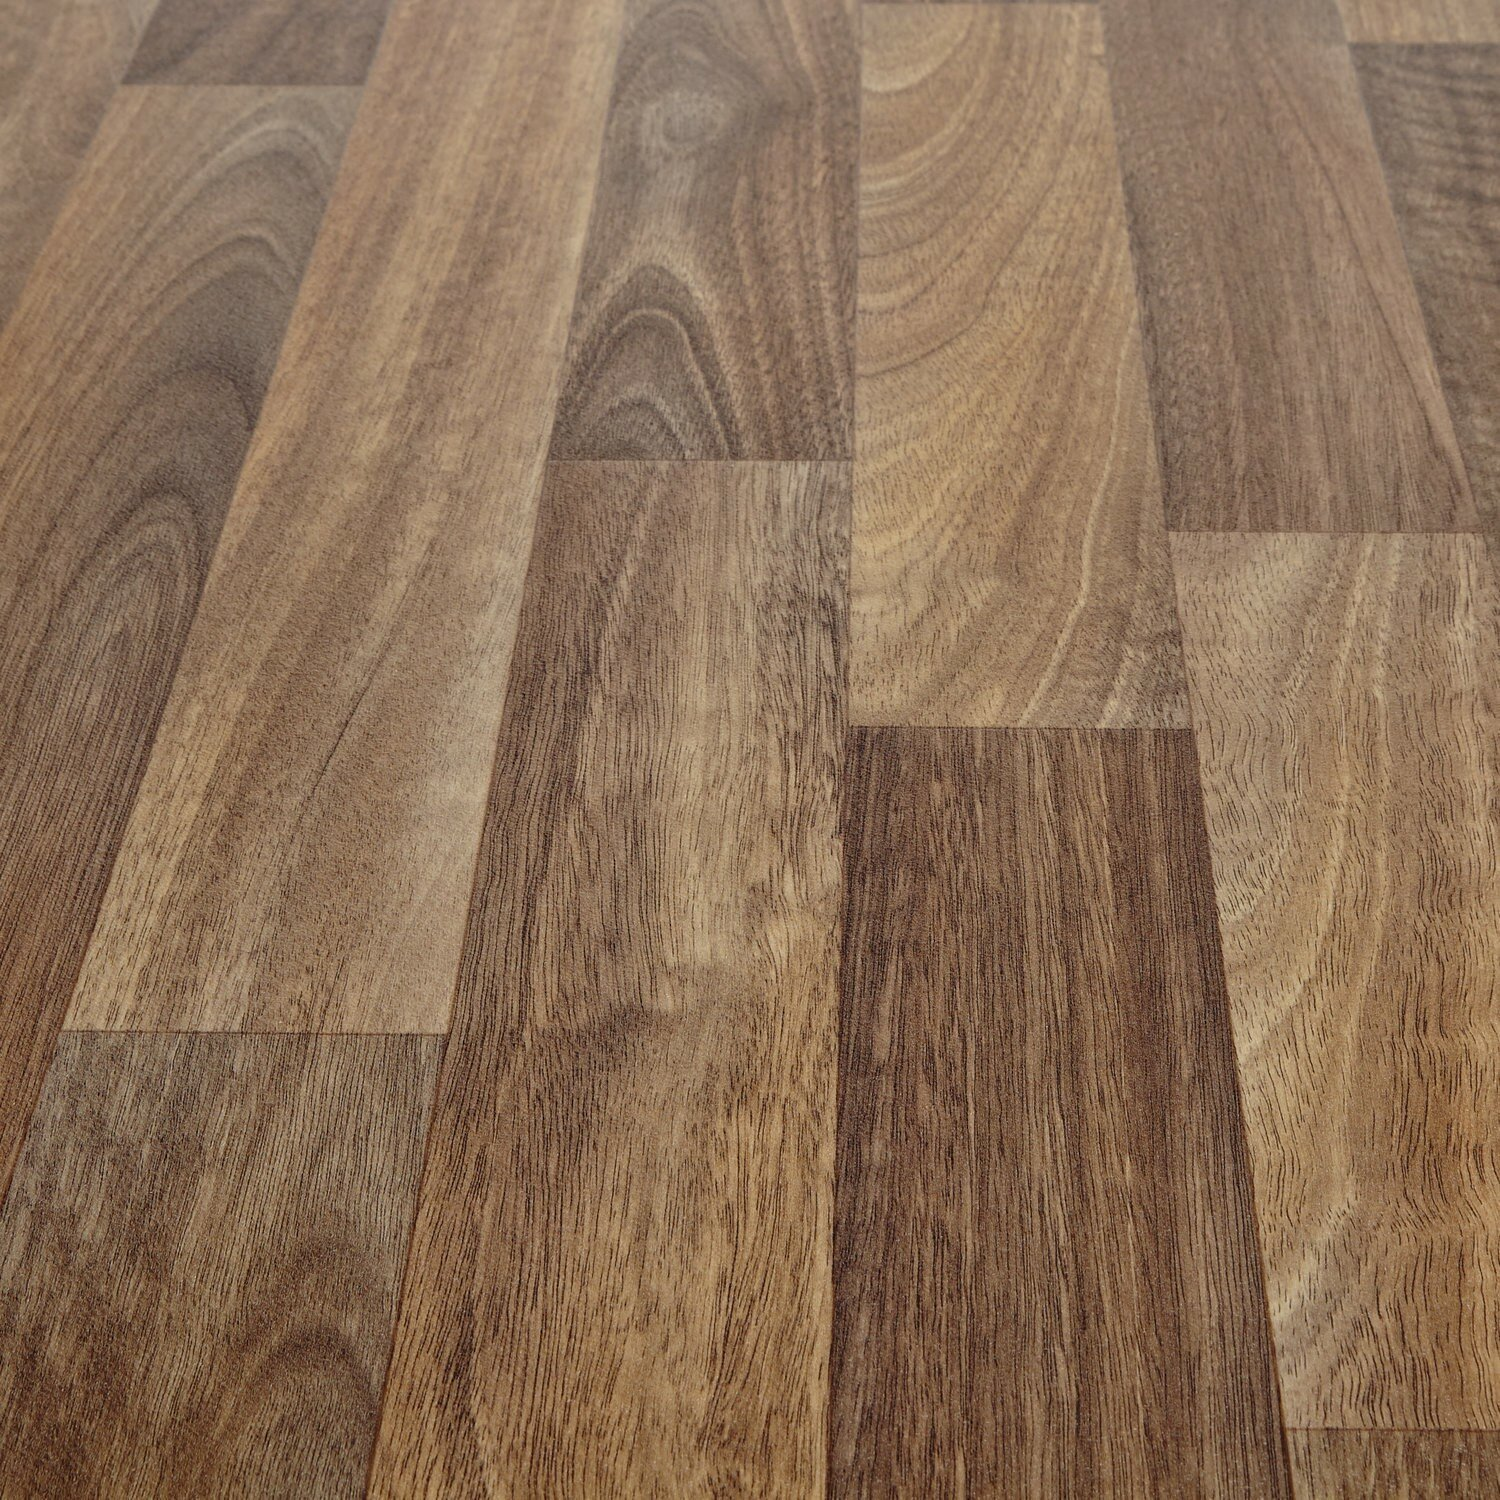 Inspirations cozy lowes linoleum flooring for classy for Pvc wood flooring